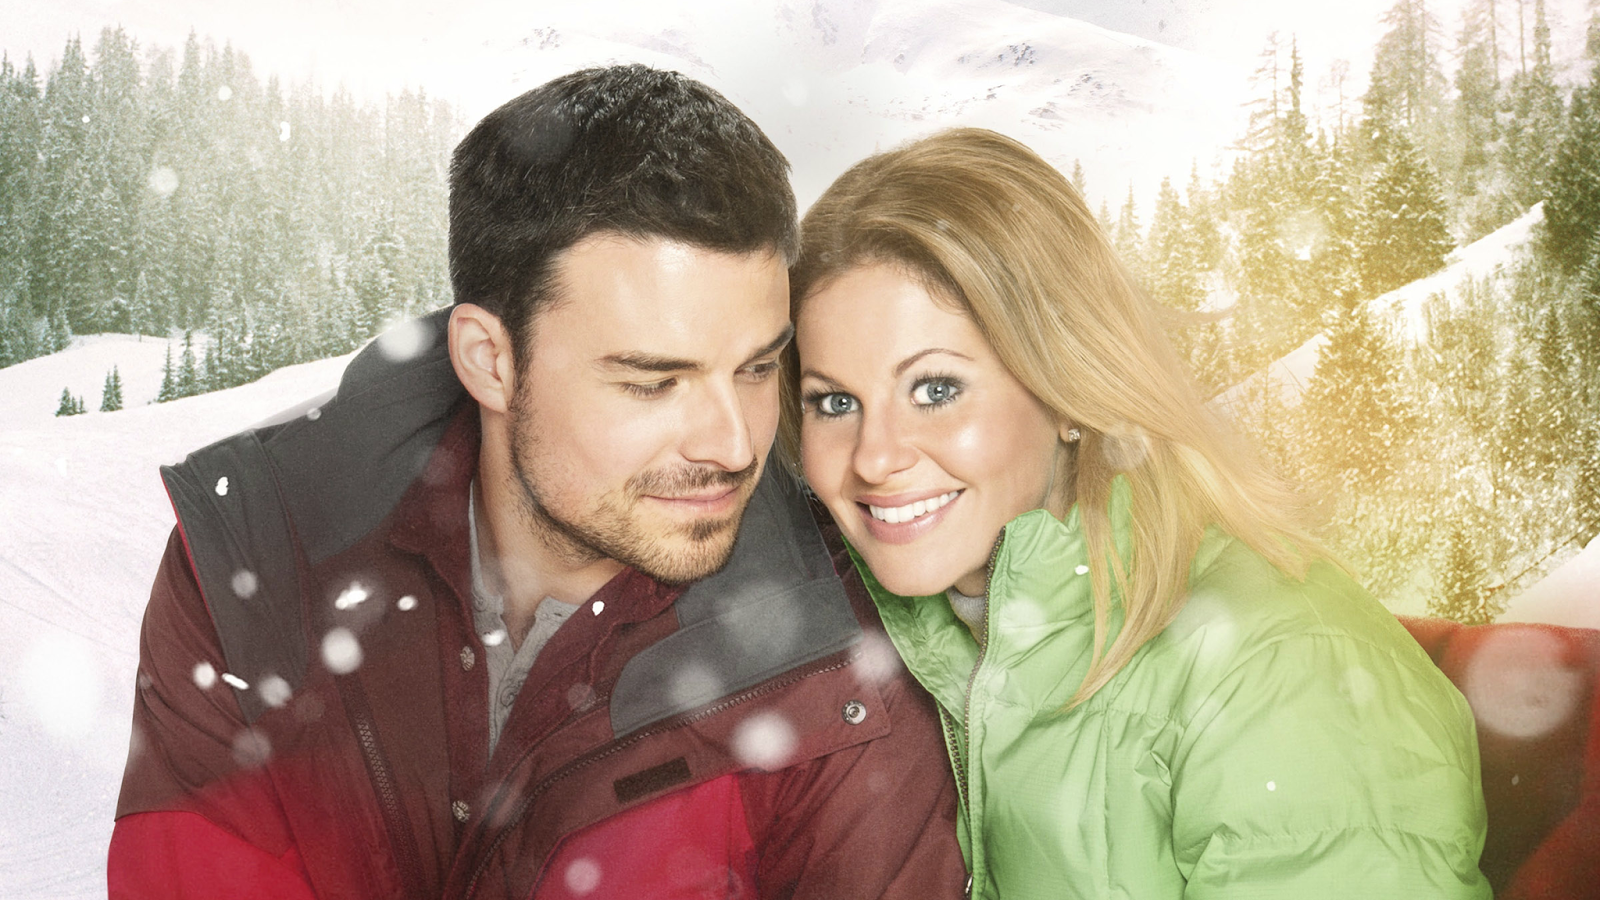 Promotional Art for the Hallmark Channel Movie - Let It Snow